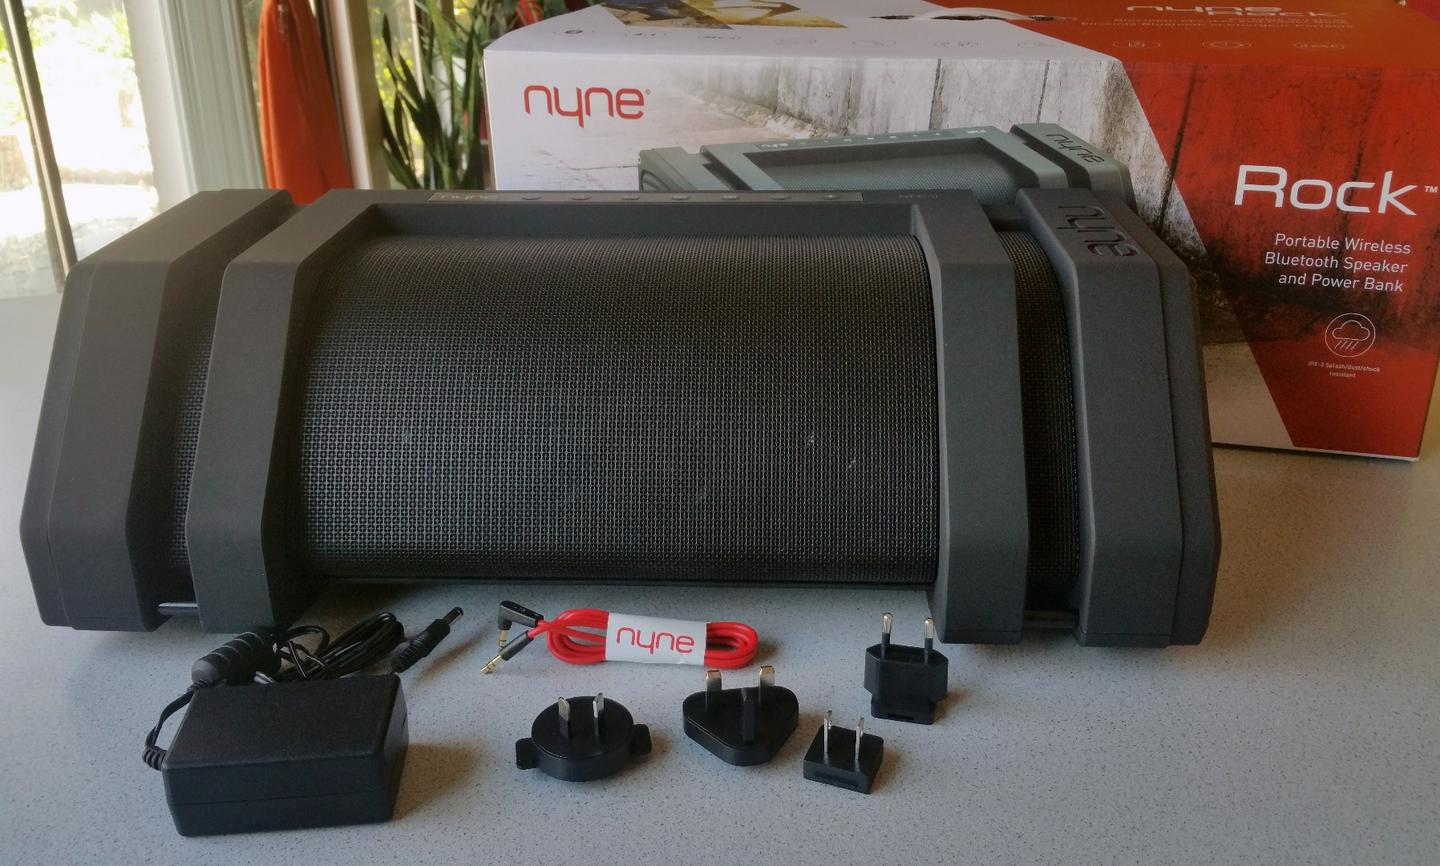 Included with the Nyne Rock is documentation, an audio cable, the wall adapter, and an assortment of international plug tips